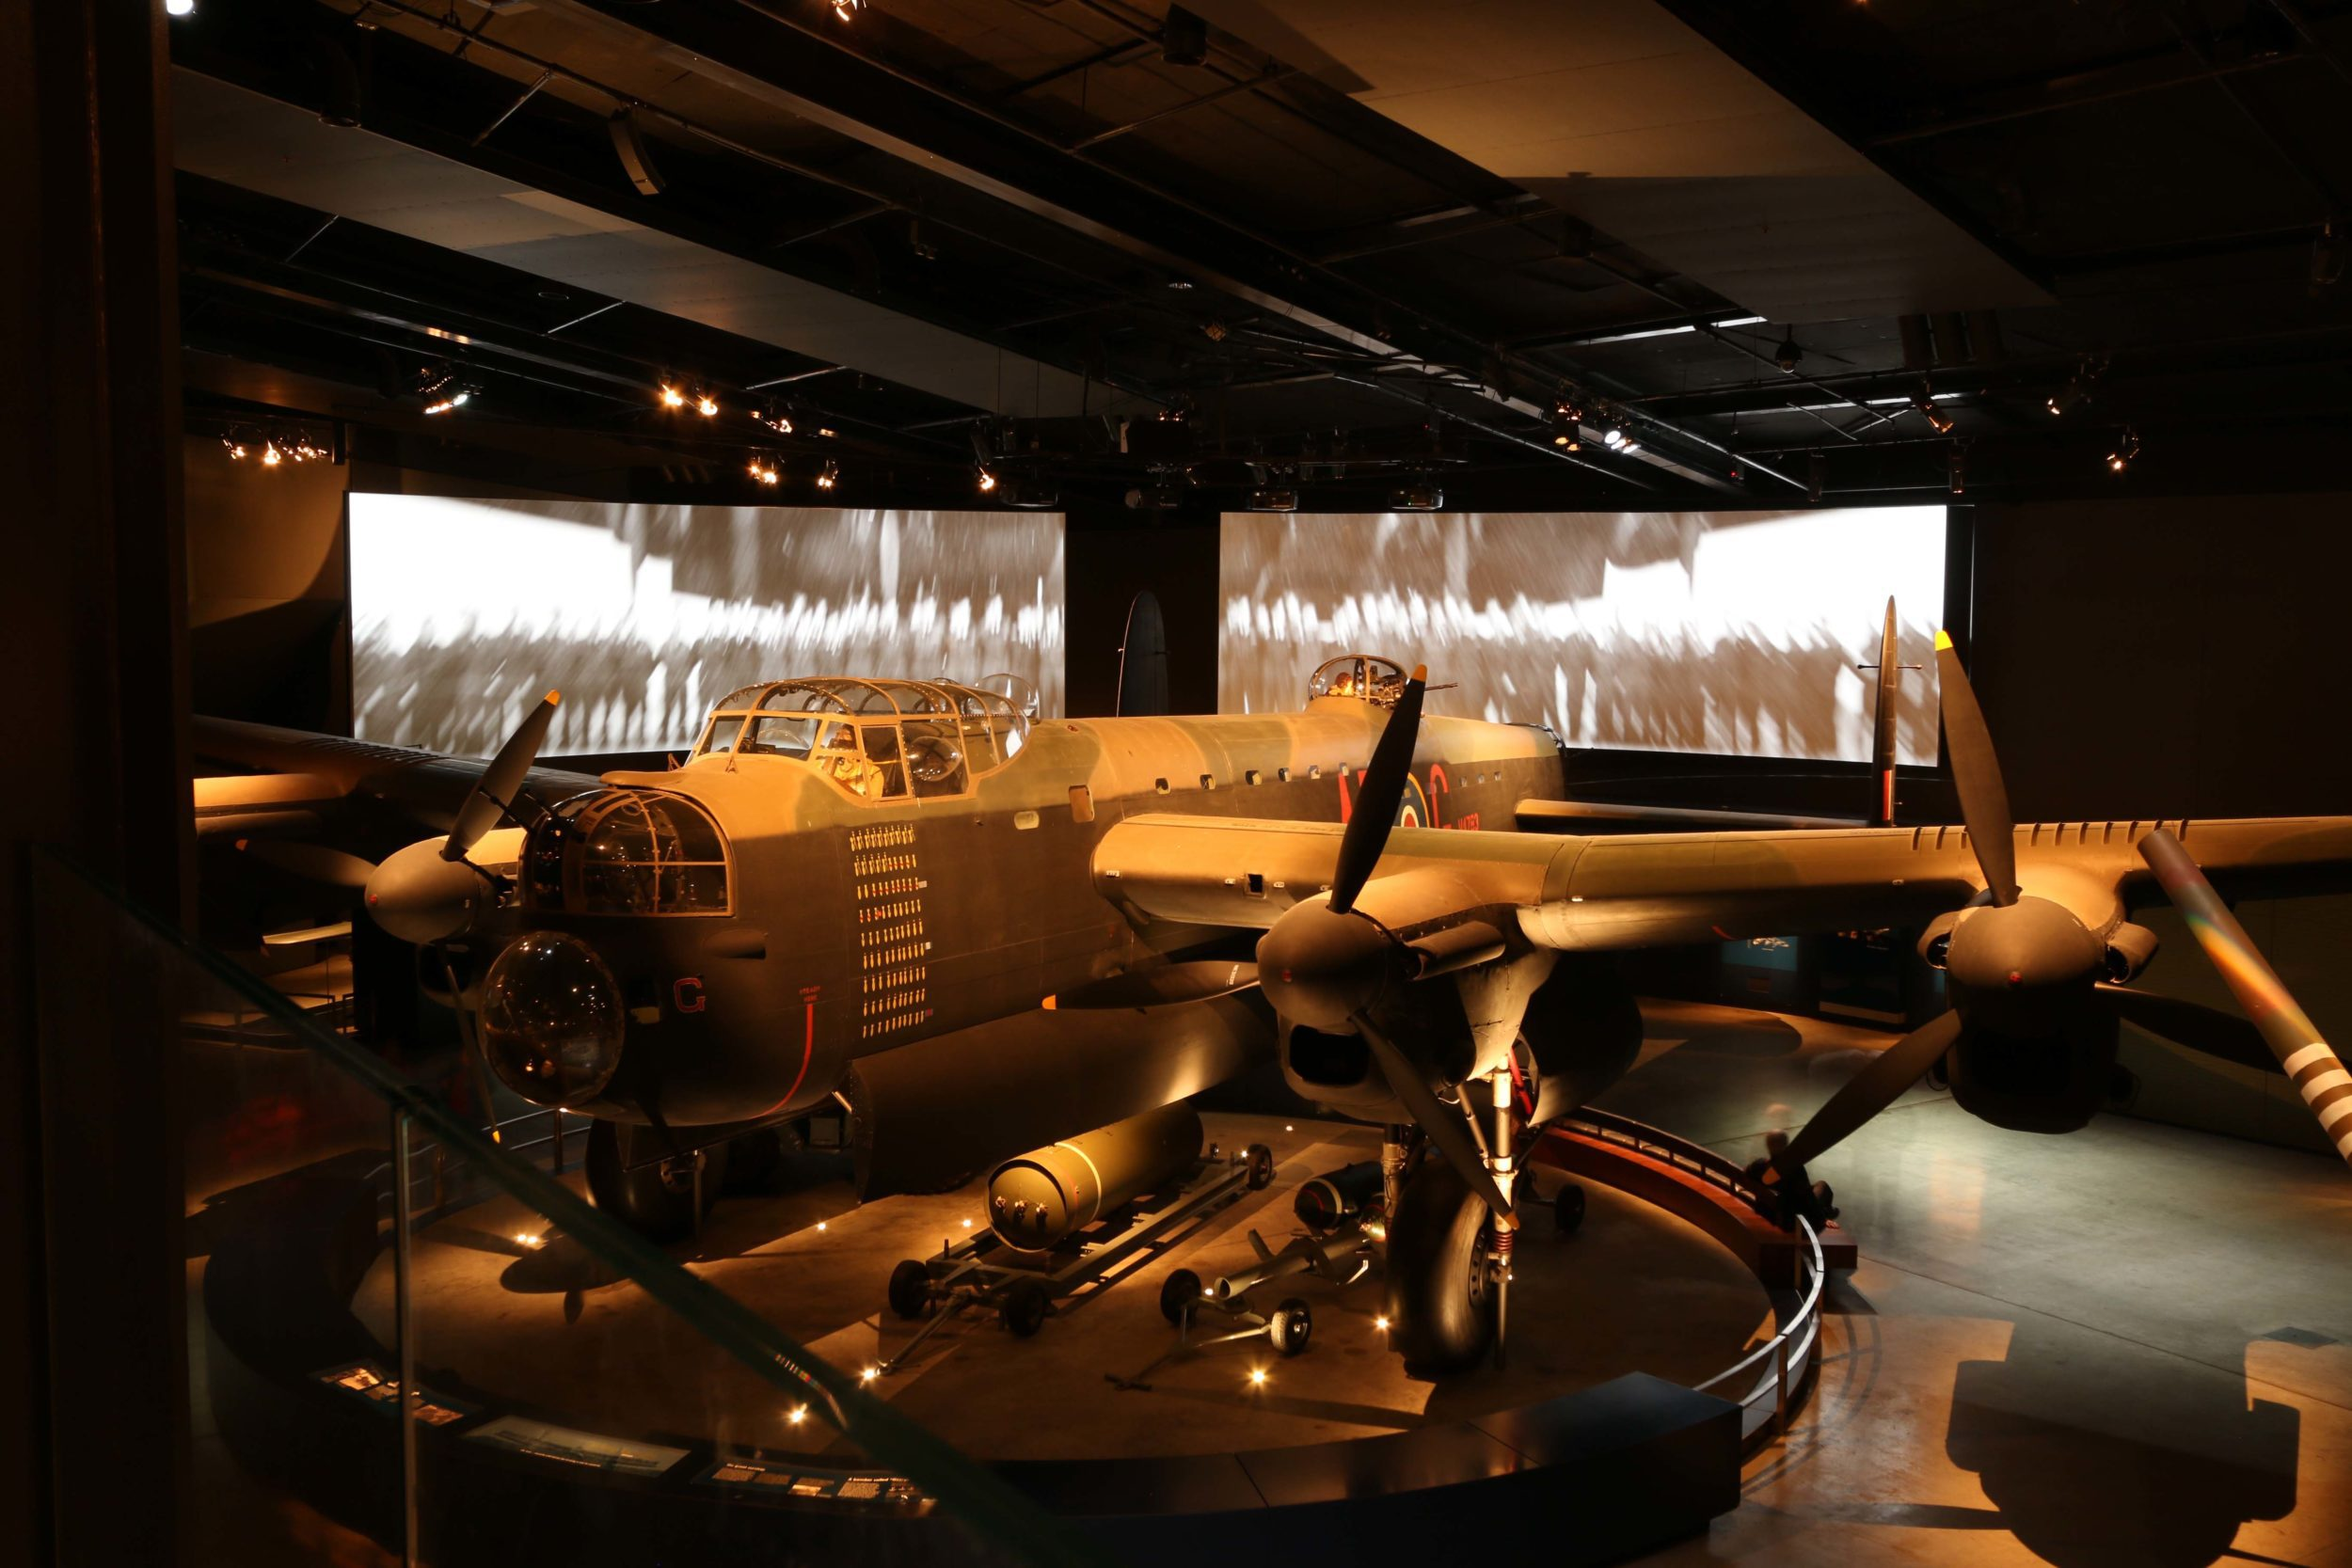 G for George Avro Lancaster Bomber Aircraft at the Australian War Memorial in Canberra